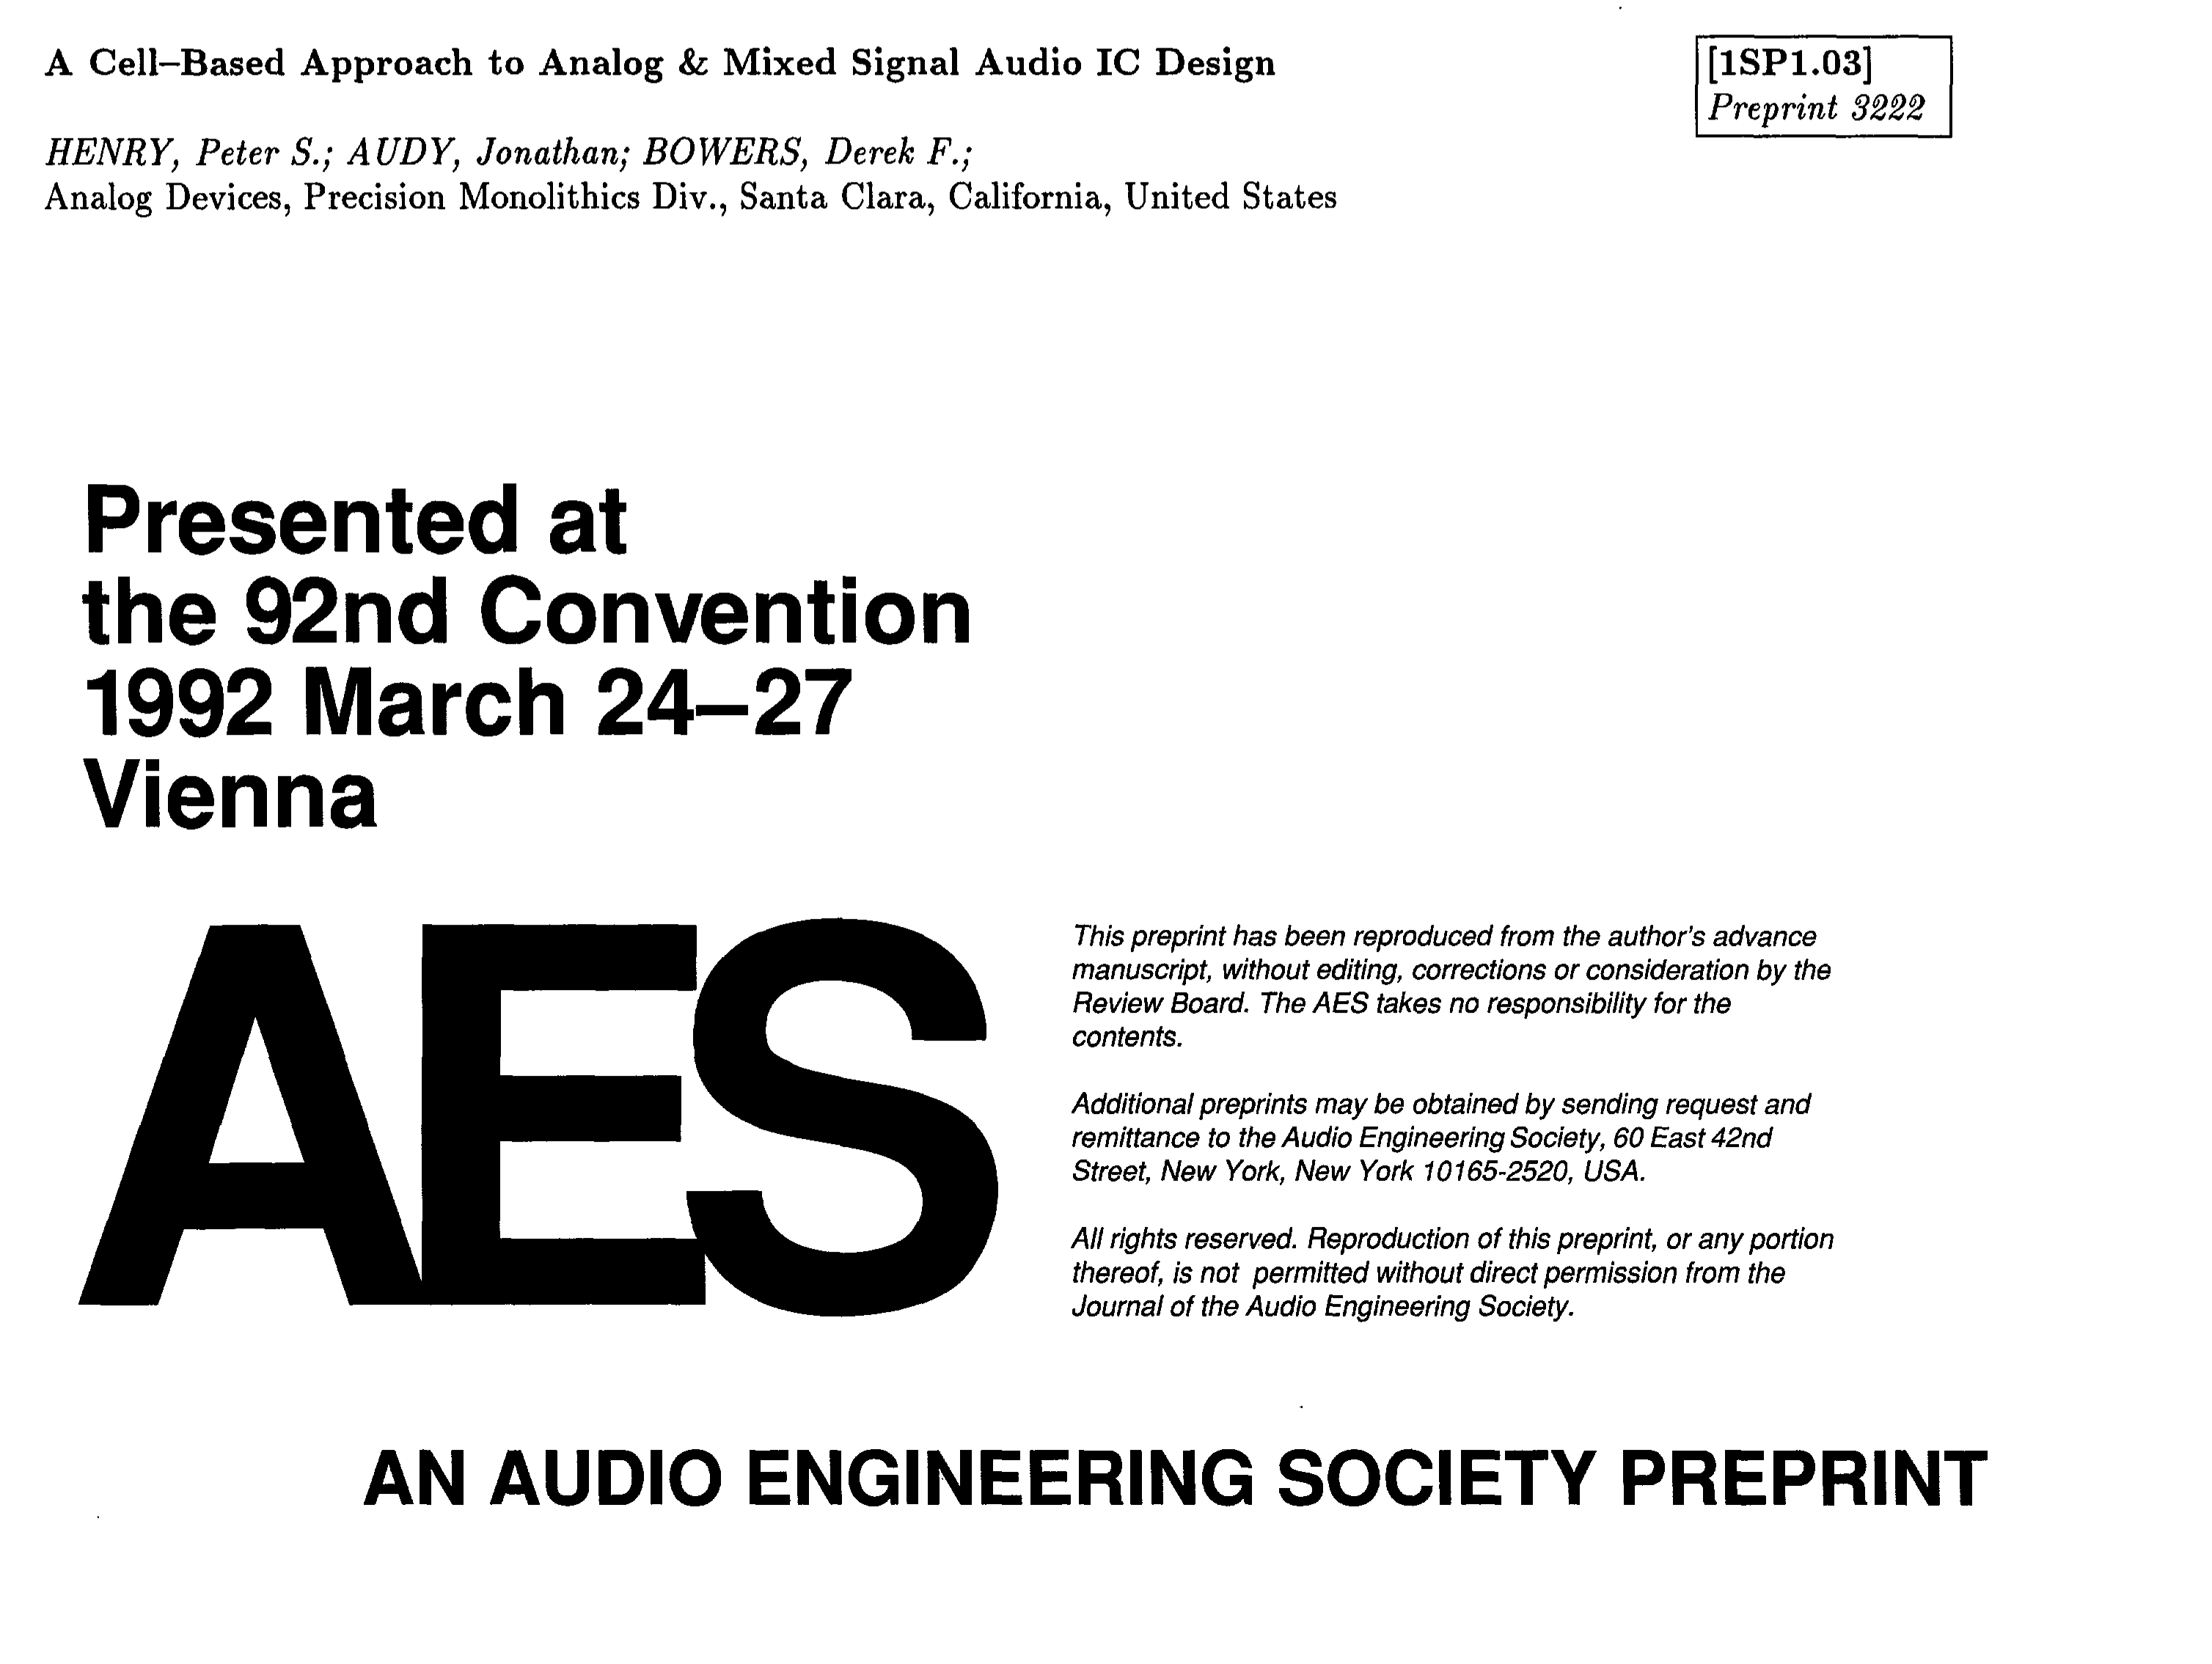 Aes E Library A Cell Based Approach To Analog And Mixed Signal Circuit Diagram Complementary Ttl Inverter Audio Ic Design